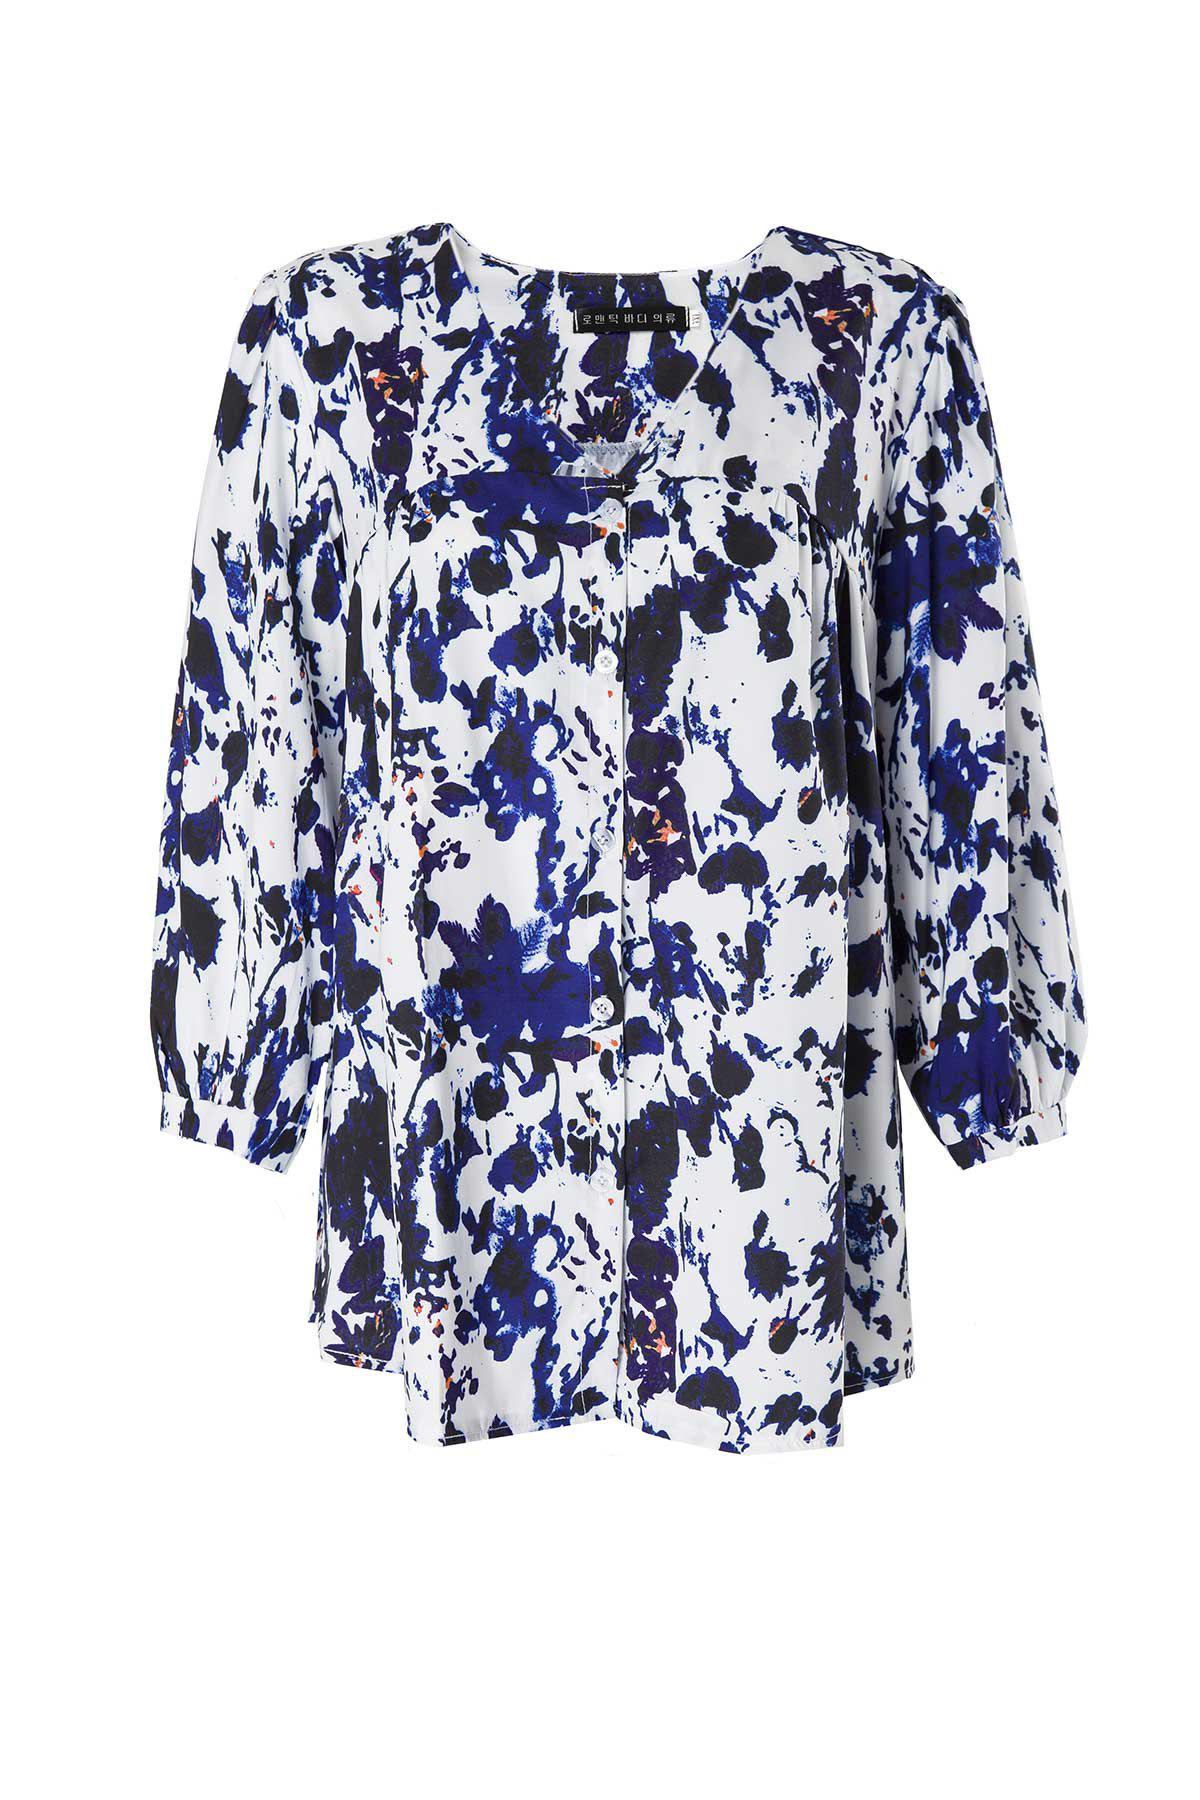 Casual V-Neck 3/4 Sleeve Plus Size Printed Women's Blouse